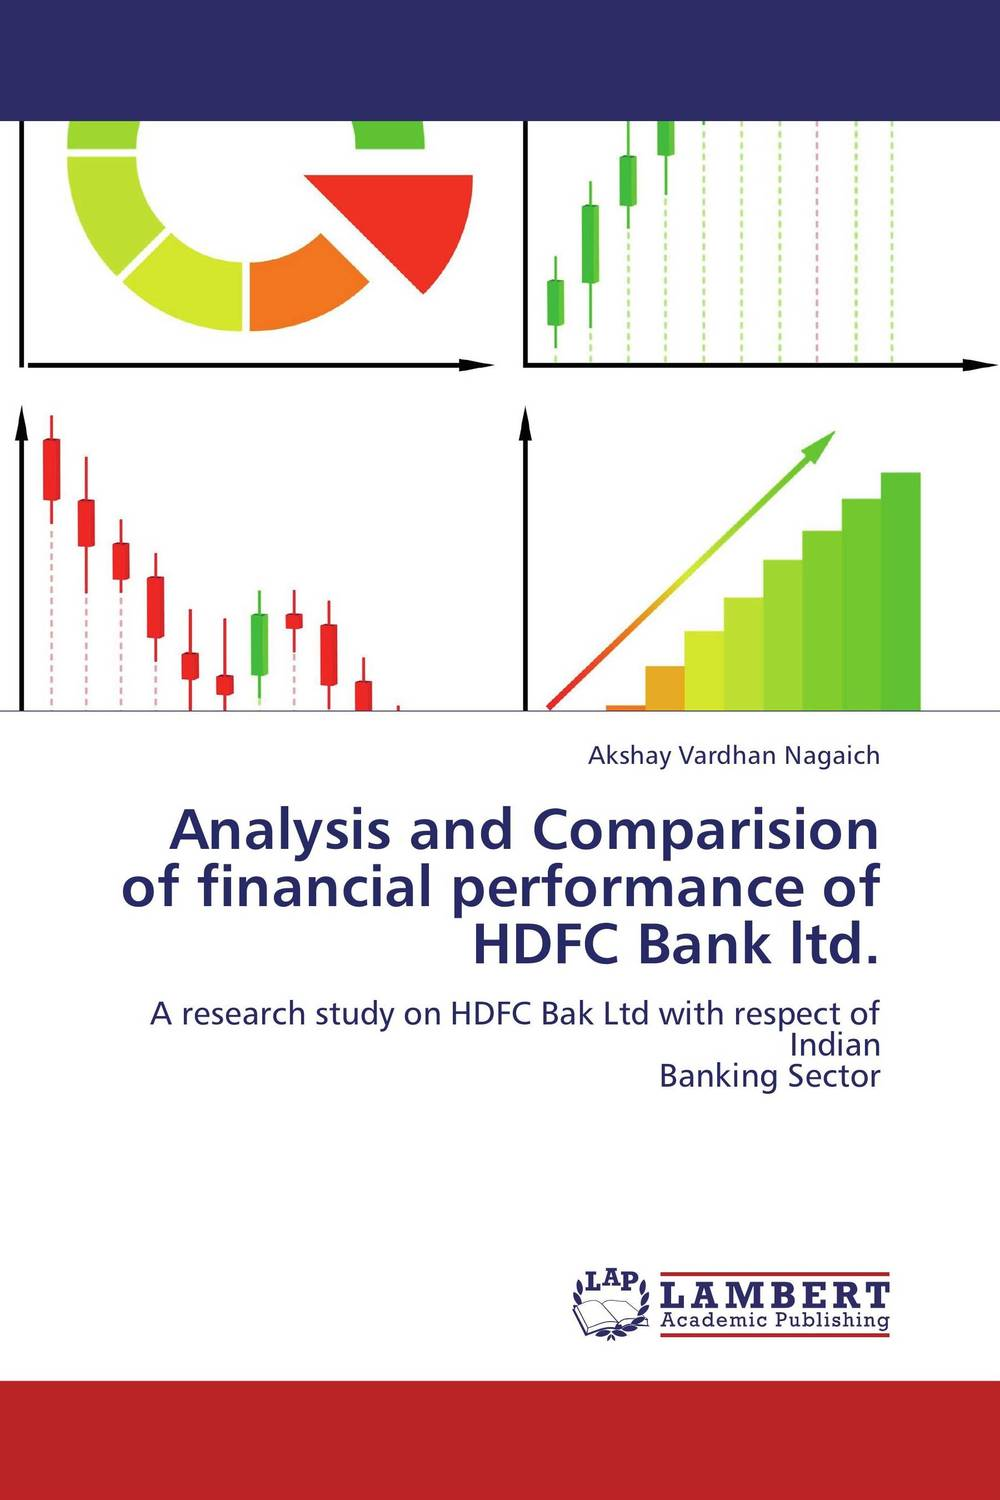 Analysis and Comparision of financial performance of HDFC Bank ltd. key performance indicators